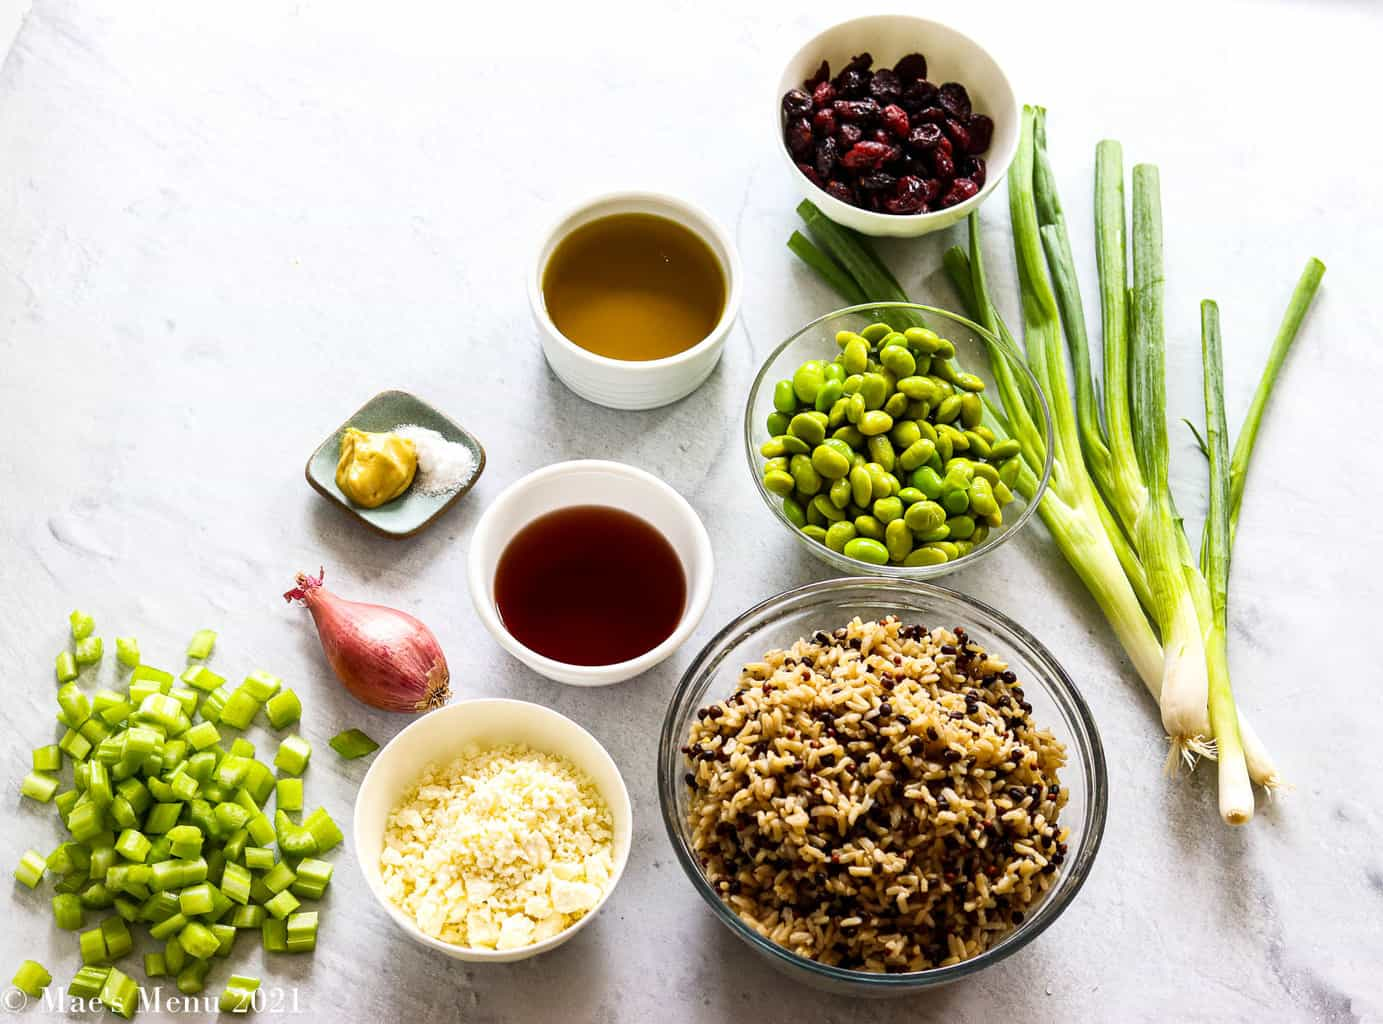 All of the ingredients for the cranberry & edamame brown rice salad: cranberries, green onions, edamame, brown rice, olive oil, red wine vinegar, feta cheese, shallot, dijon and salt, diced celery